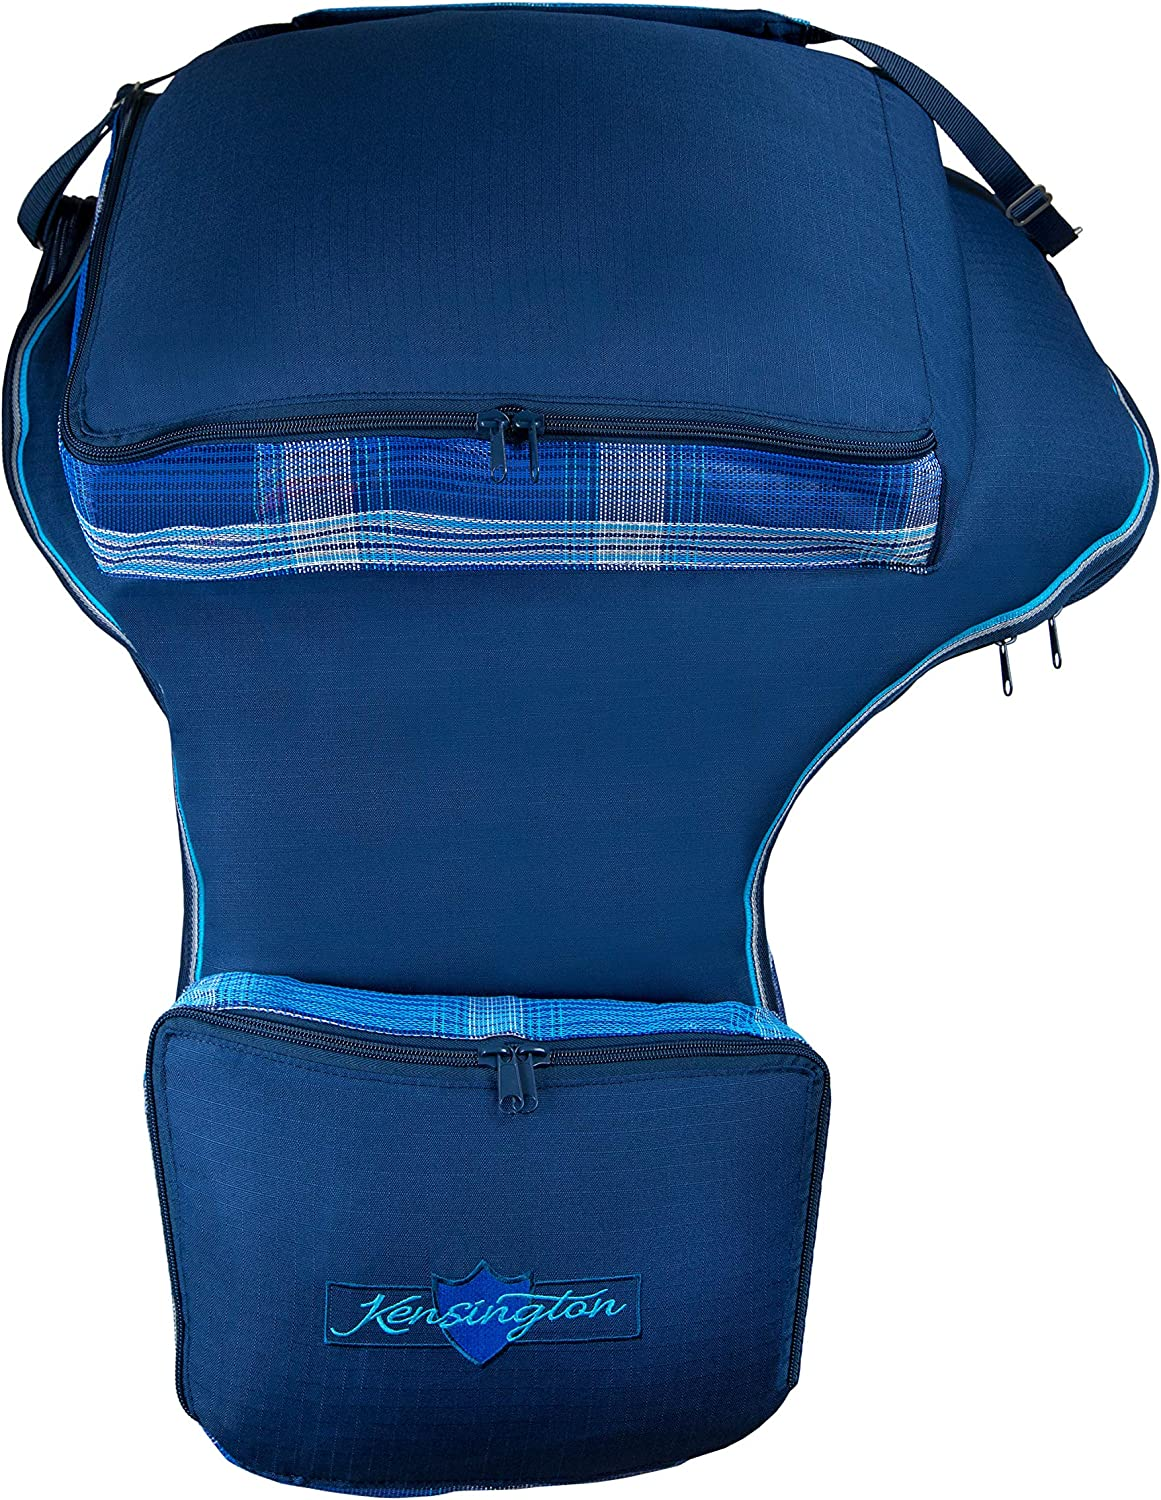 Kensington Western Saddle Carry Bag /— Protection for Biggest of Saddles /— Extra Side Pockets and One Large Pocket on Top for Storage /— Mesh Allows Airflow and Prevents Mold and Mildew